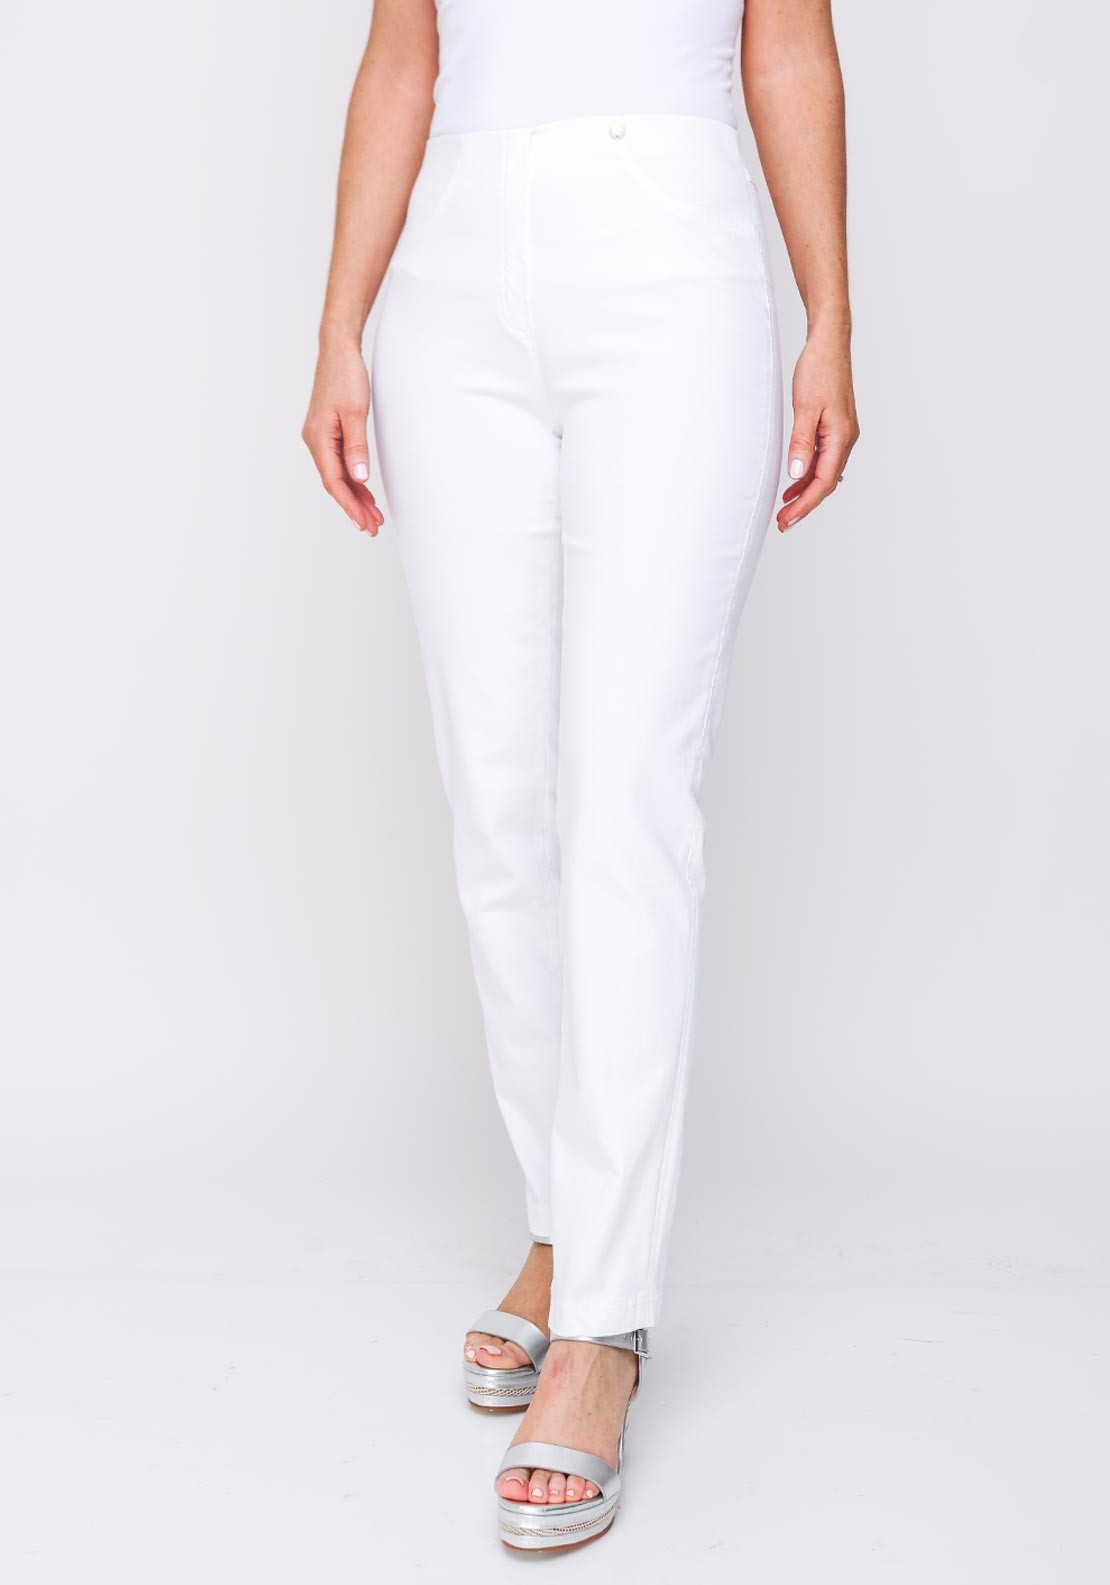 955910b3b4d Robell Bella Stretch Denim Jeans, White. Be the first to review this product